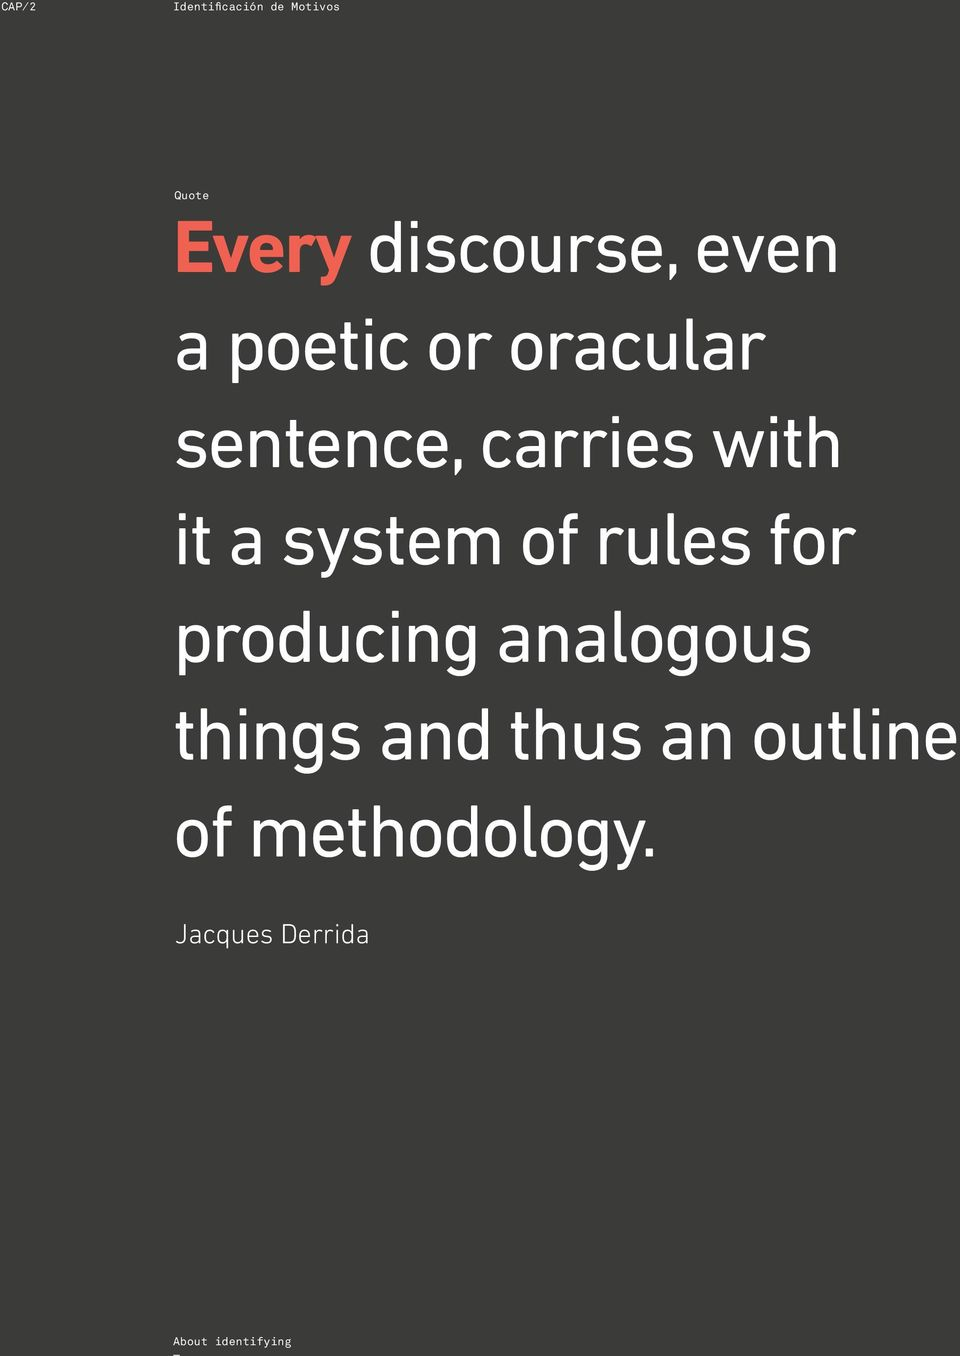 system of rules for producing analogous things and thus